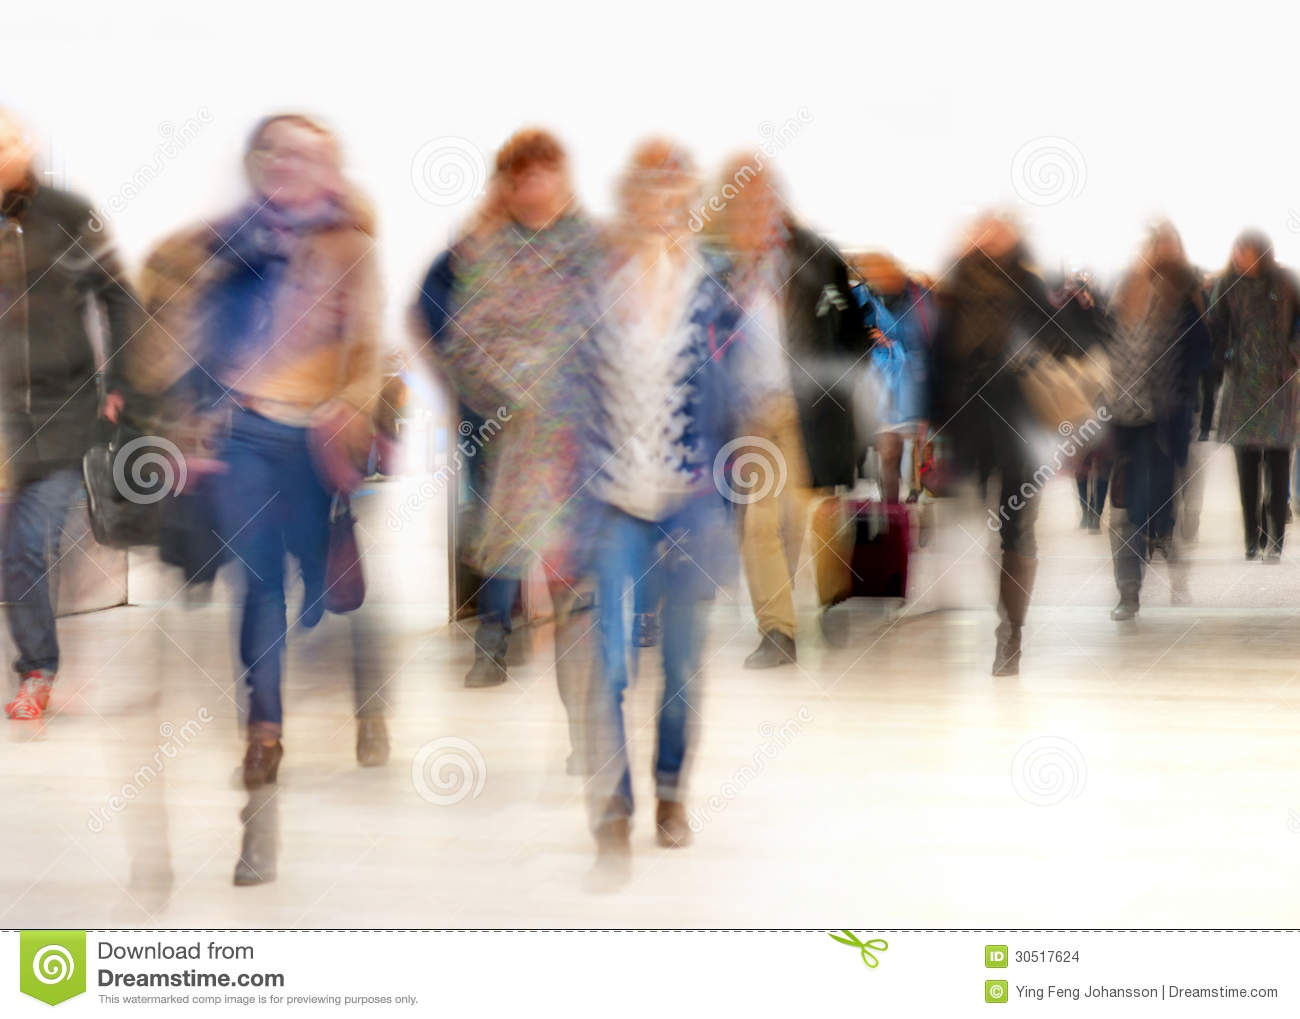 People In Blurred Motion Stock Images - Image: 30517624